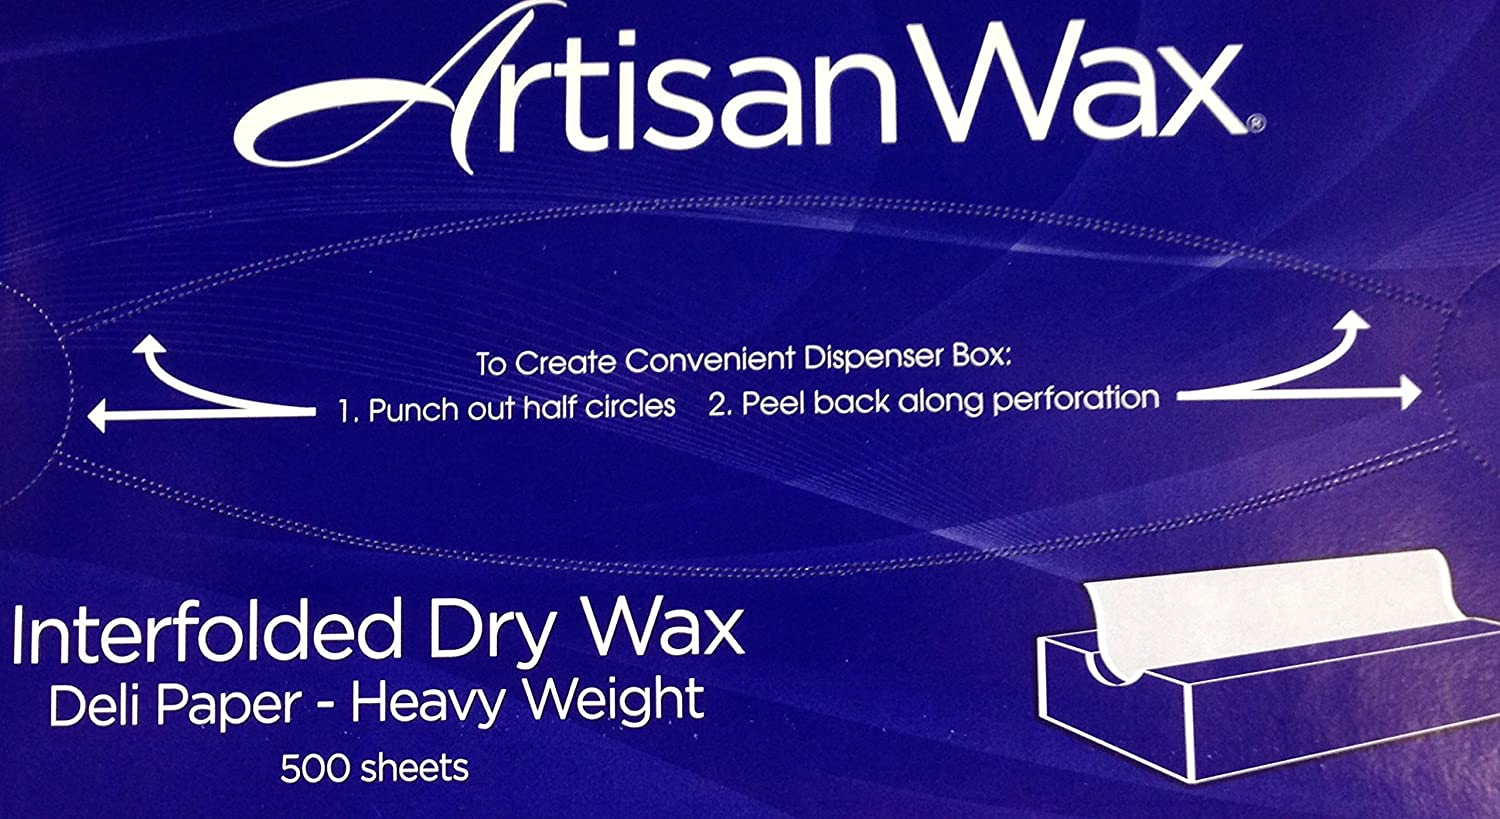 Artisan Wax - 10in x 10.75in - Wax Paper Sheets - Box of 500 Sheets